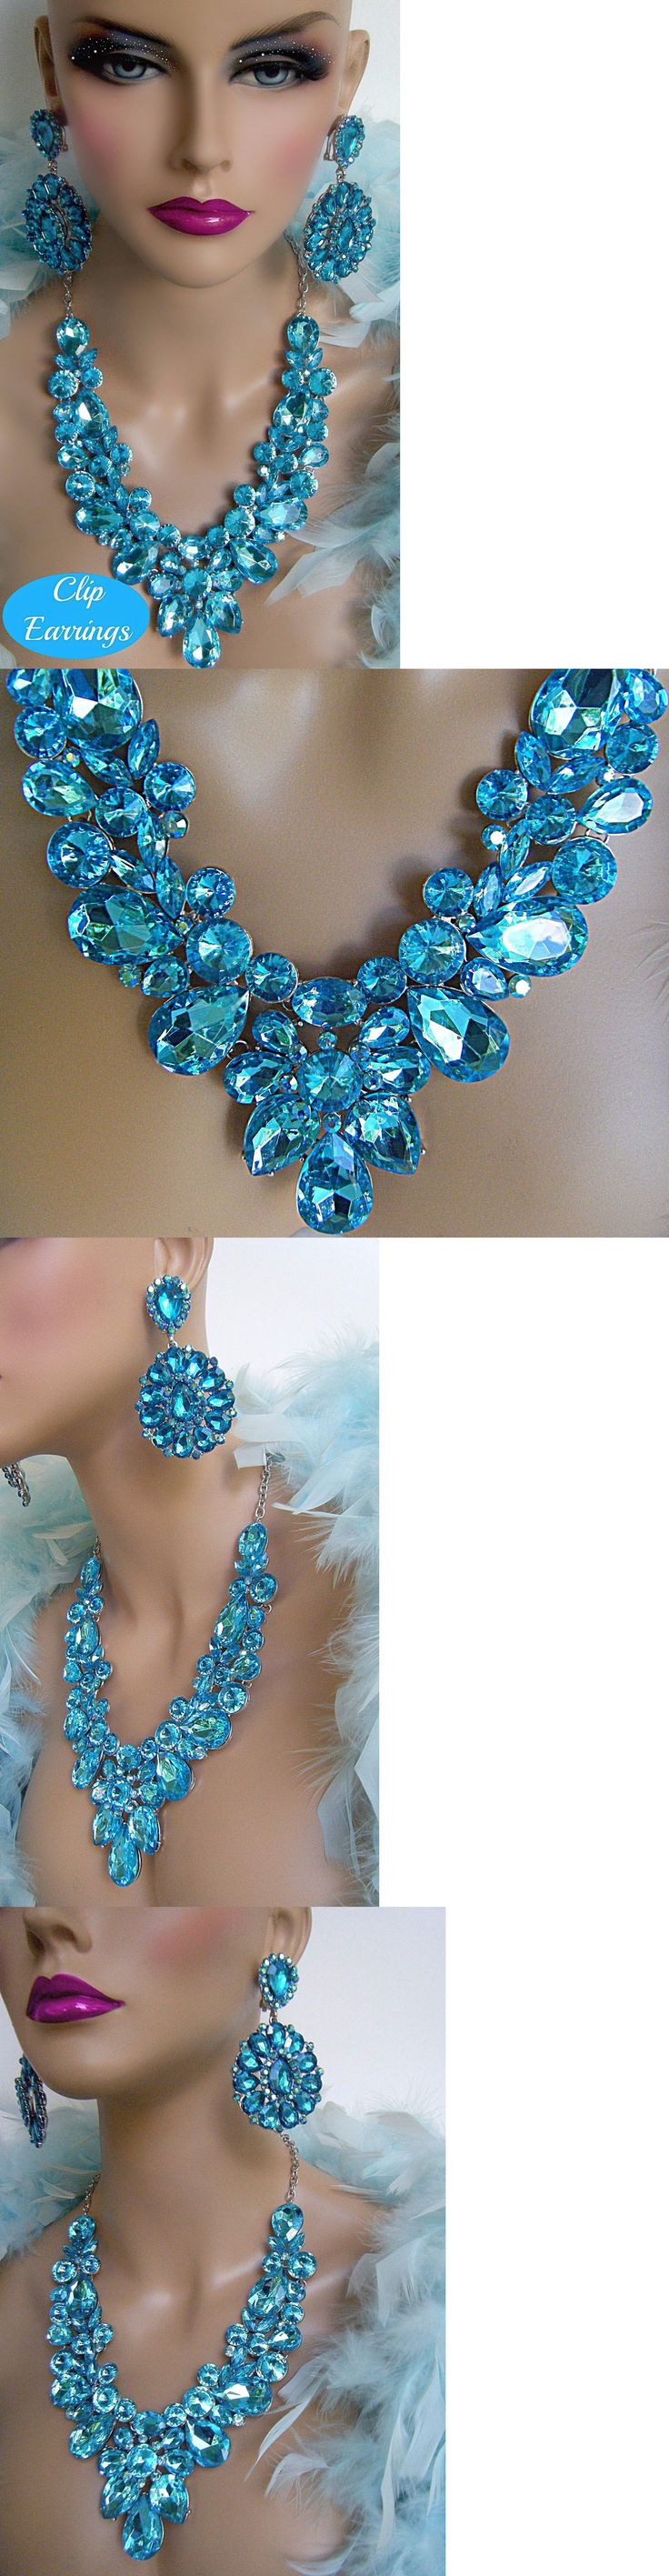 Jewelry Sets 50692: Ab Aqua Crystal Necklace Clip Earrings Set Bridal Pageant Drag Queen Costume BUY IT NOW ONLY: $48.48